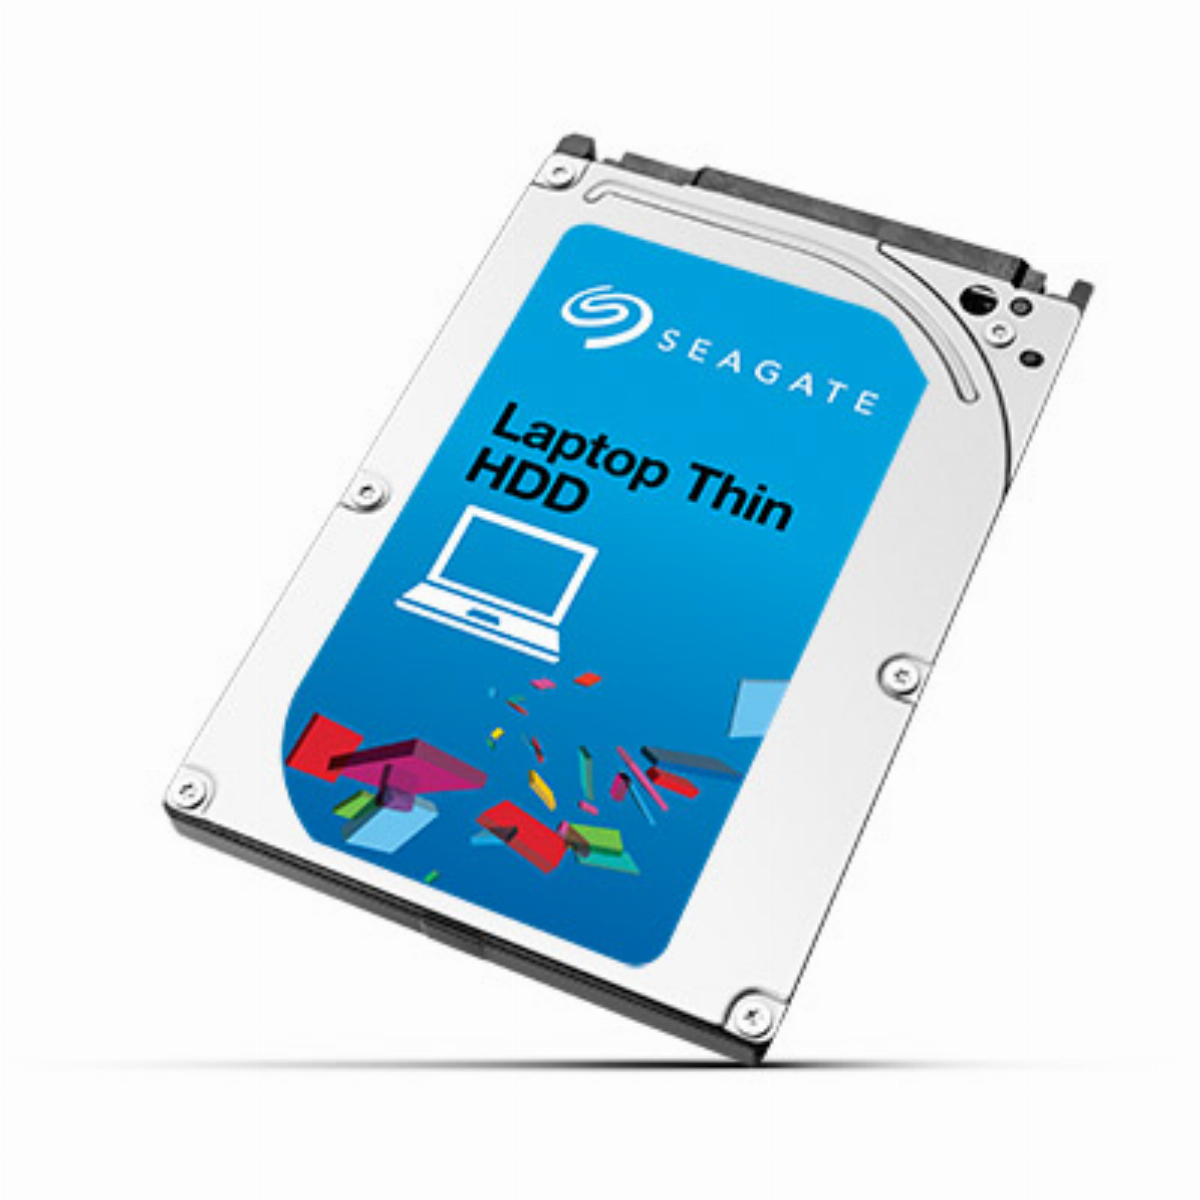 """Хард диск SEAGATE 1TB 2.5"""" 128MB cache 5400rpm"""